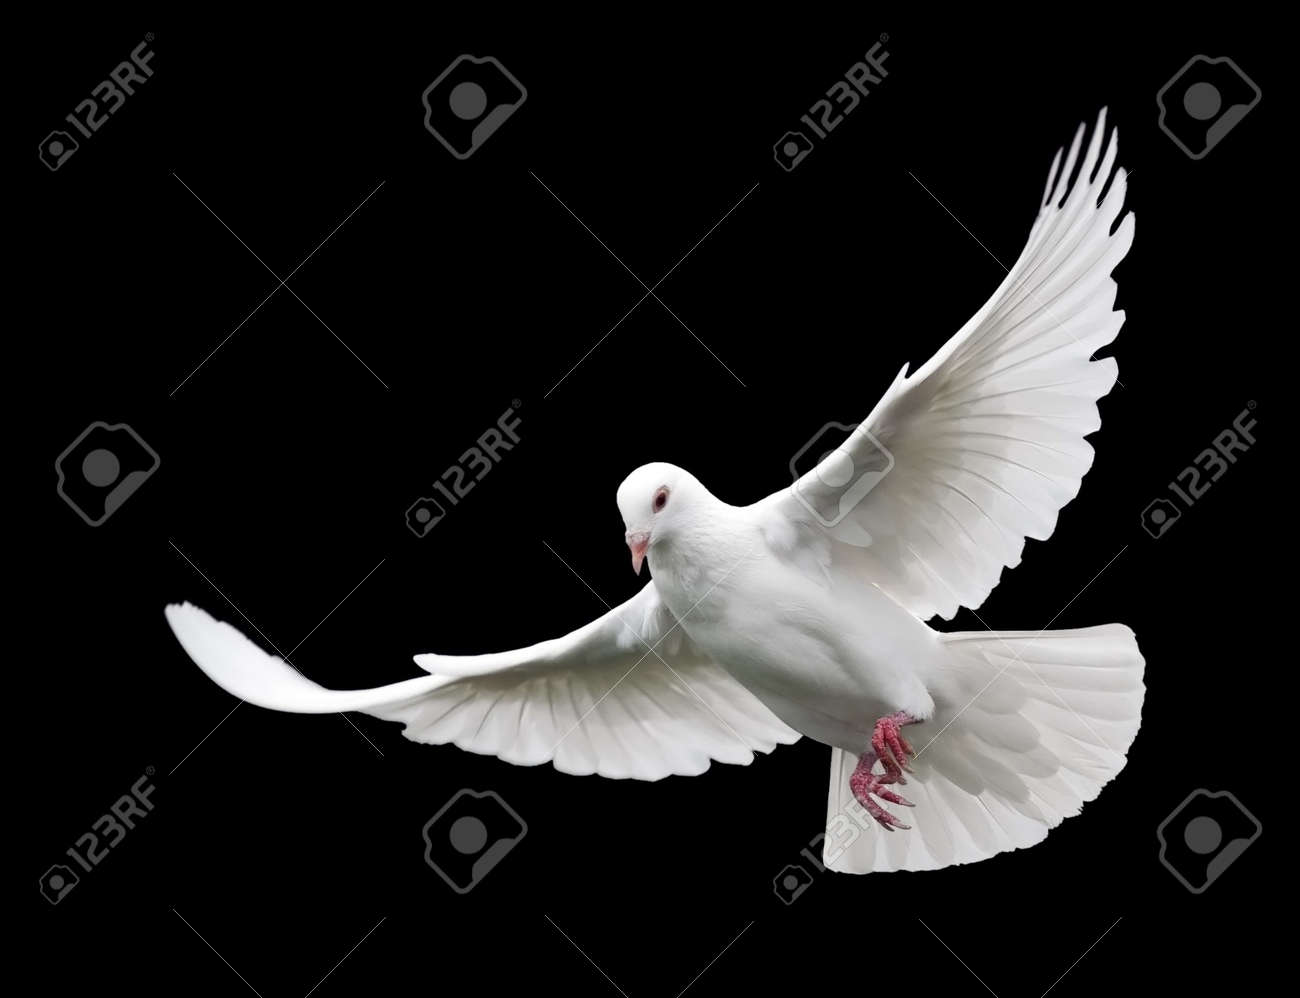 White Dove in Flight 6. A free flying white dove isolated on a black background. - 659240